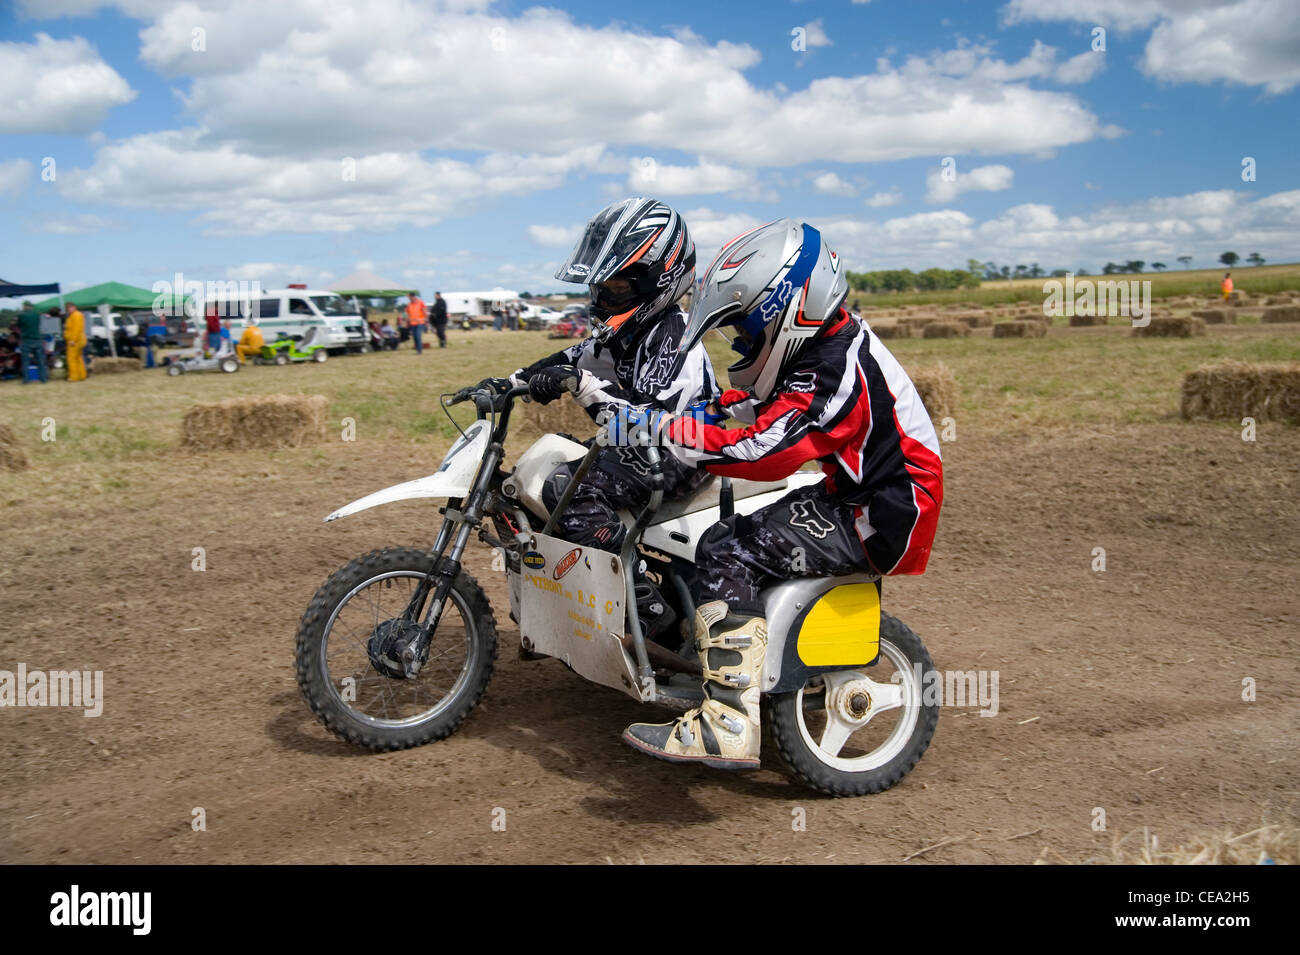 kids sidecar motorcycle racing Stock Photo: 43247489 - Alamy